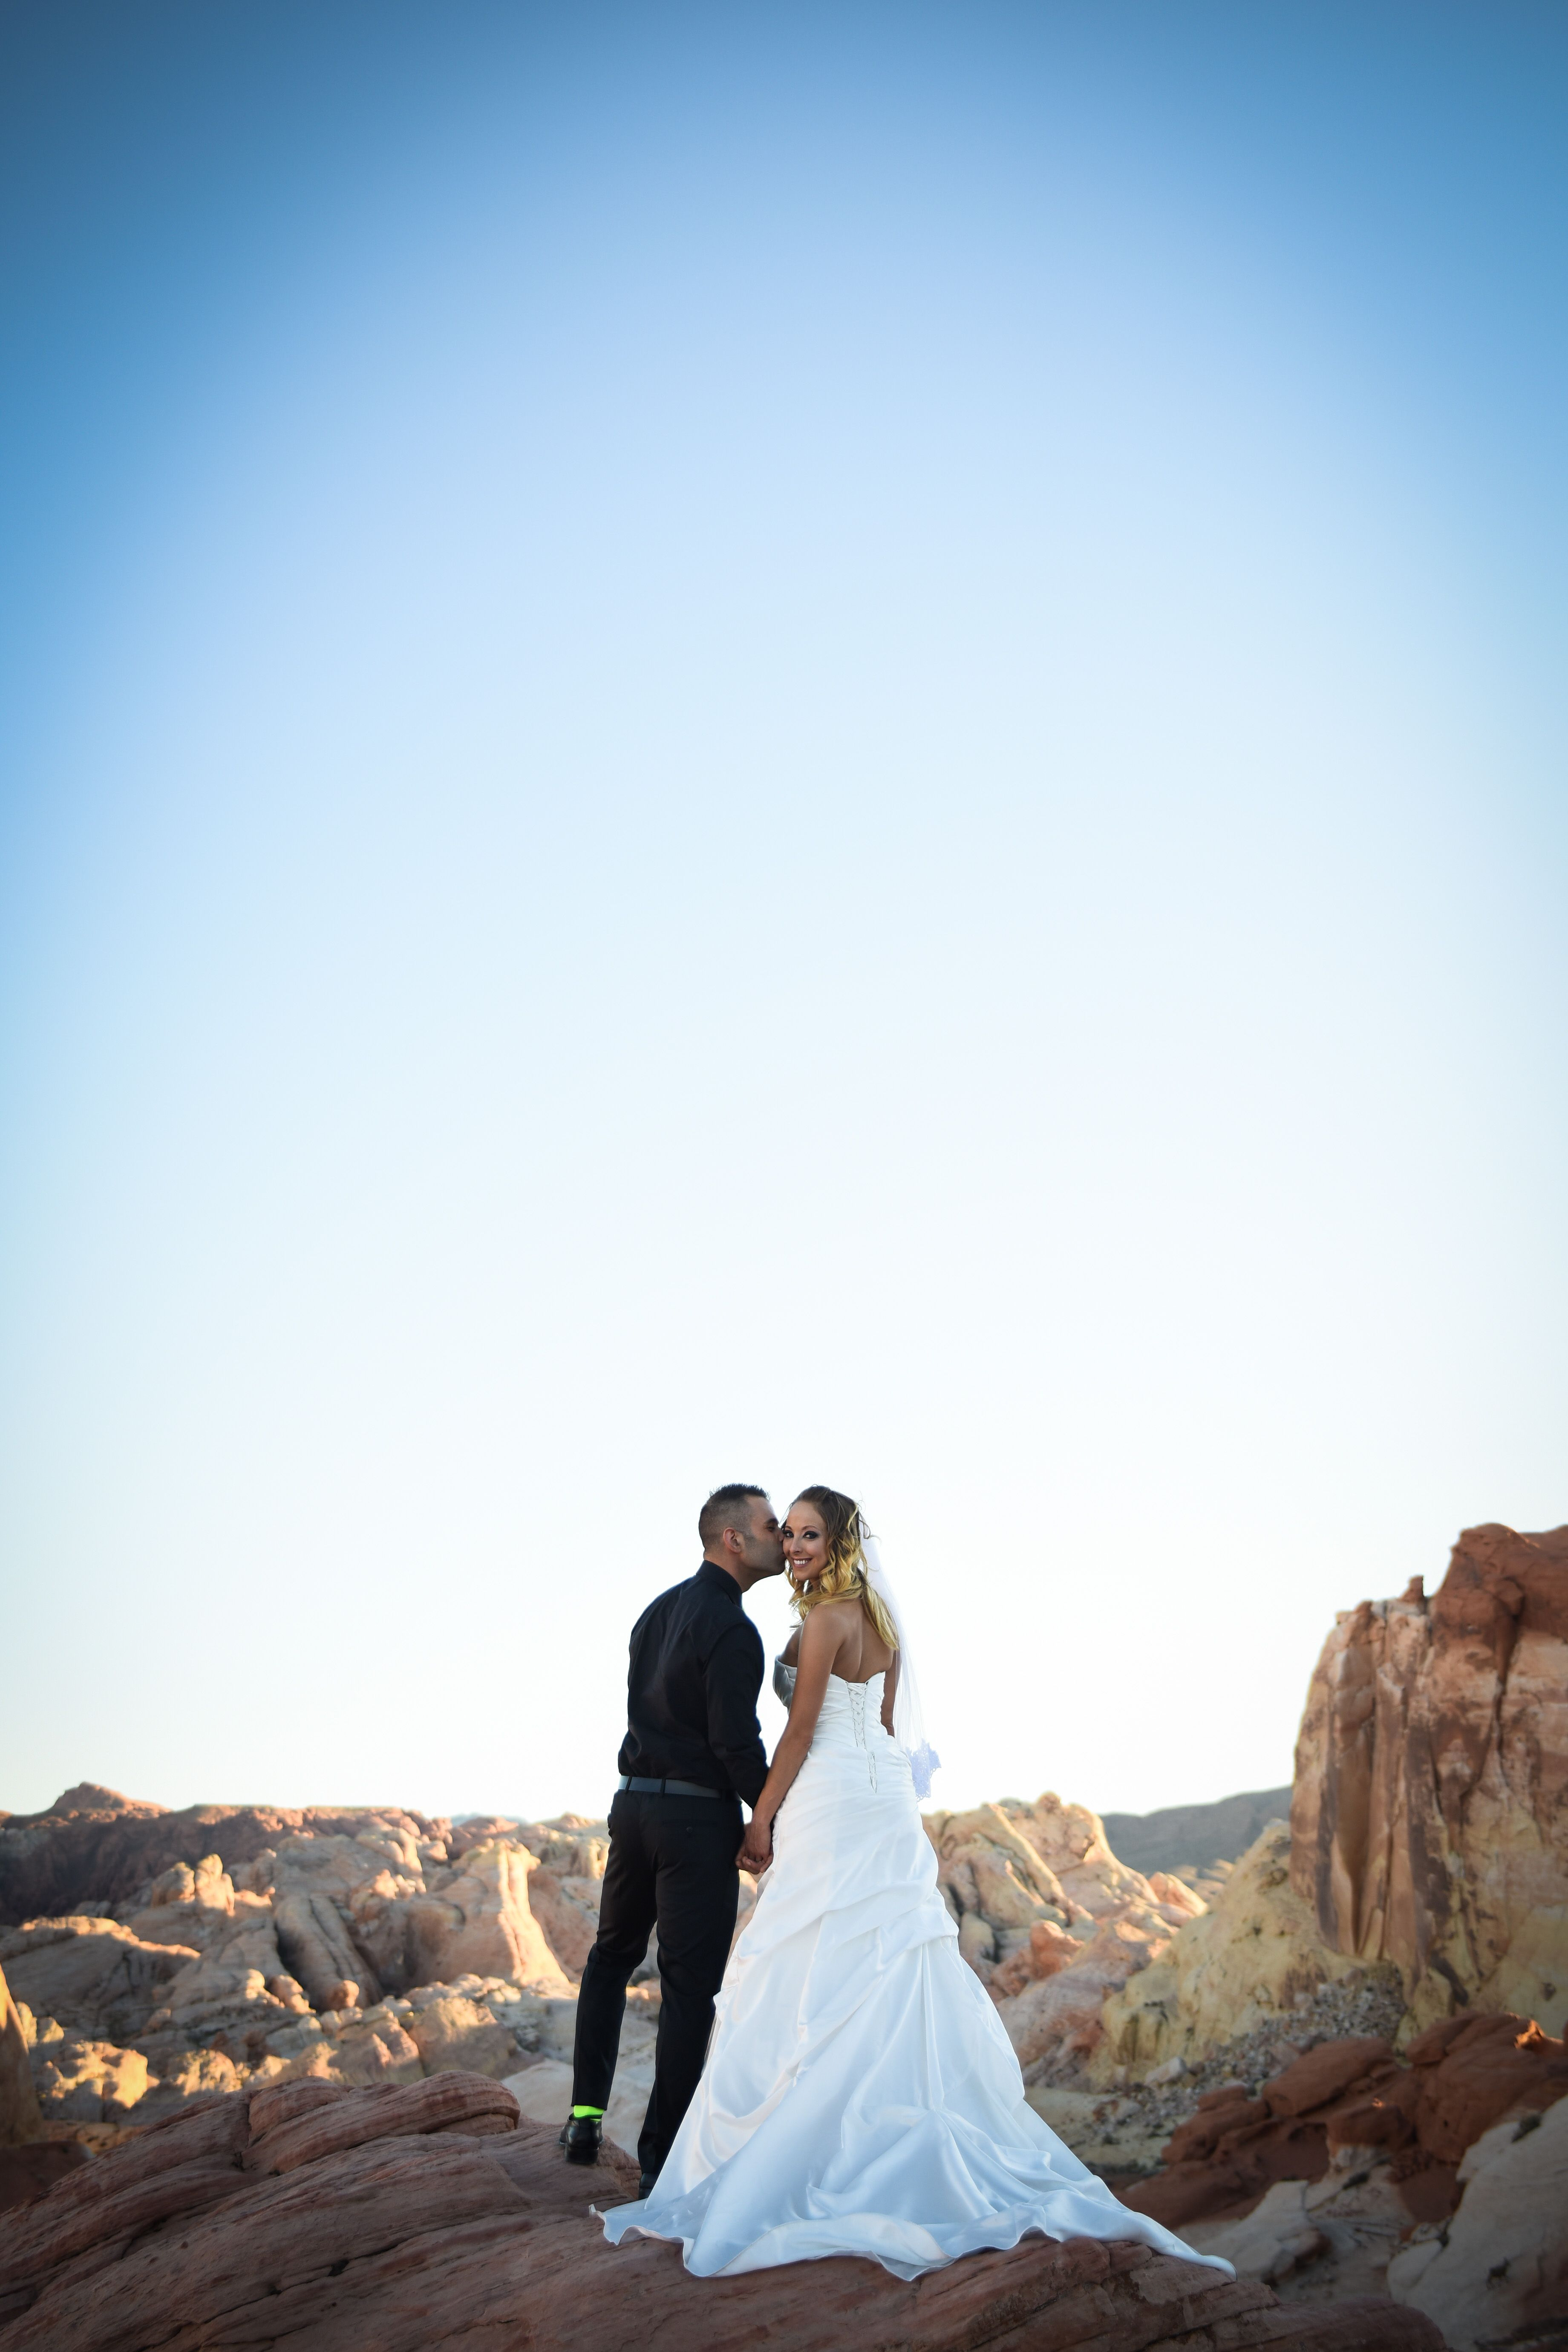 Elope In Las Vegas At The Valley Of Fire Beautiful Outdoor Wedding Ideas For S Looking To Get Married